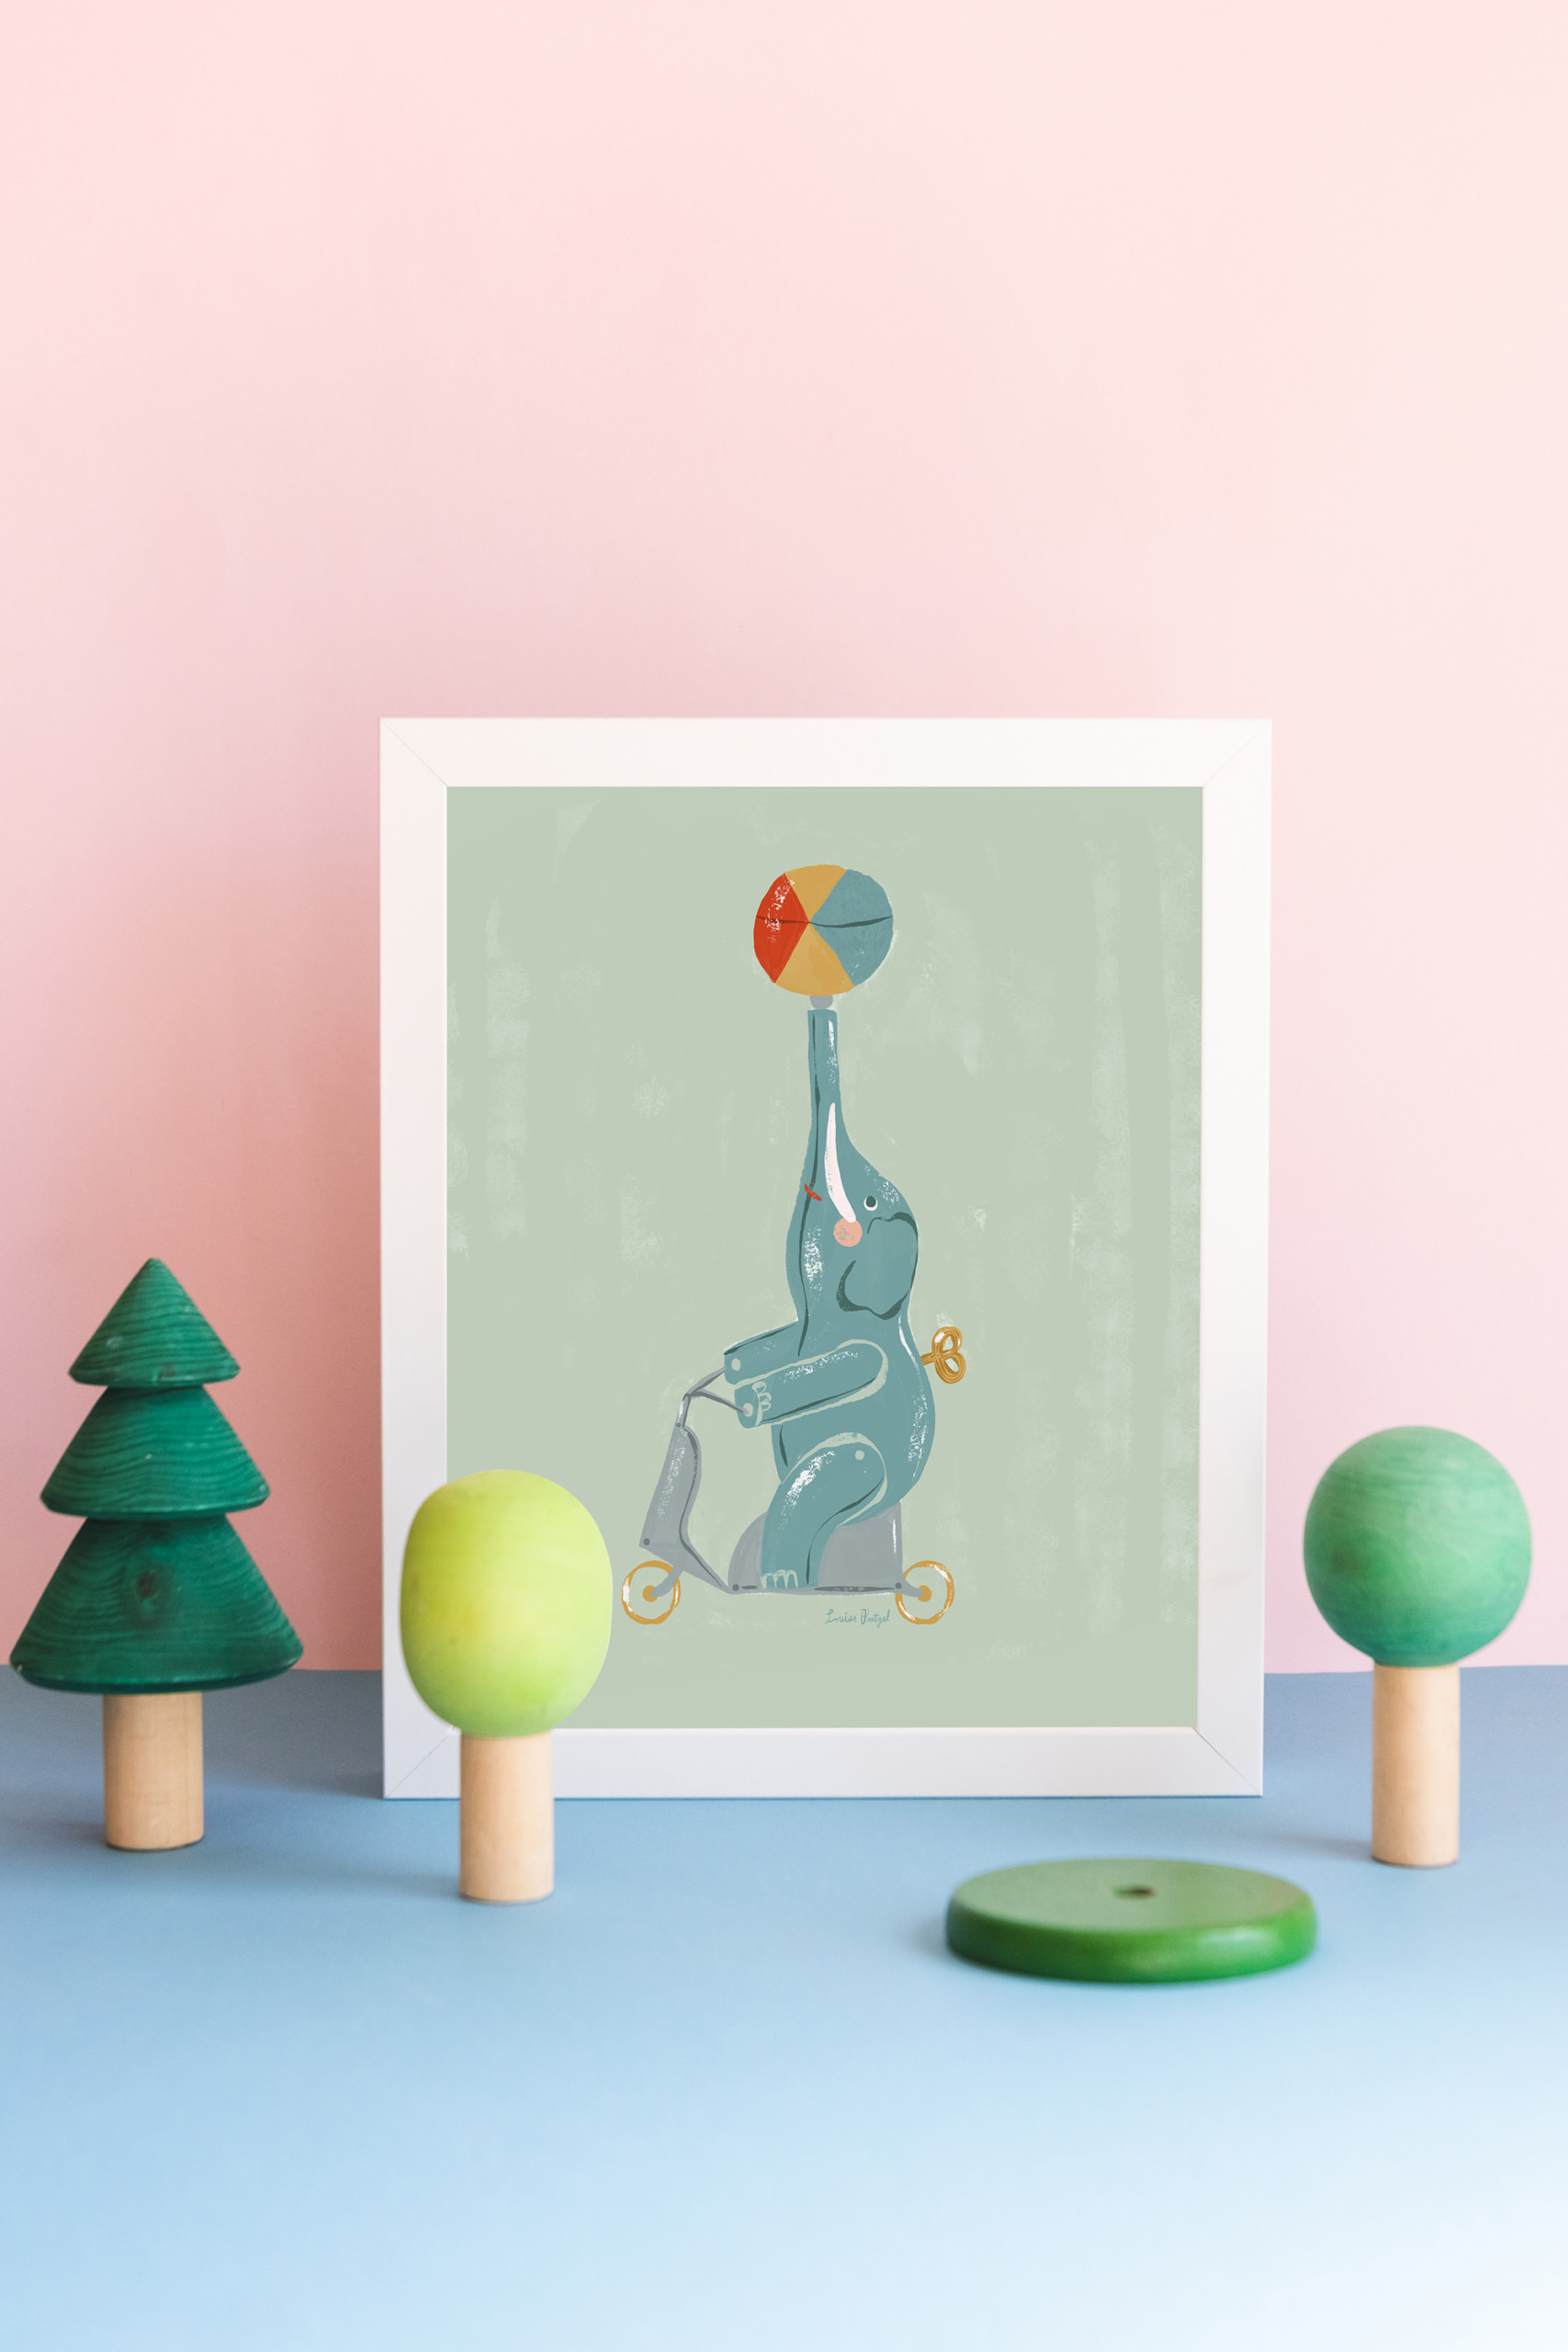 A print of Louise Pretzel's elephant leans against a pink wall with wooden tree toys in front of it.